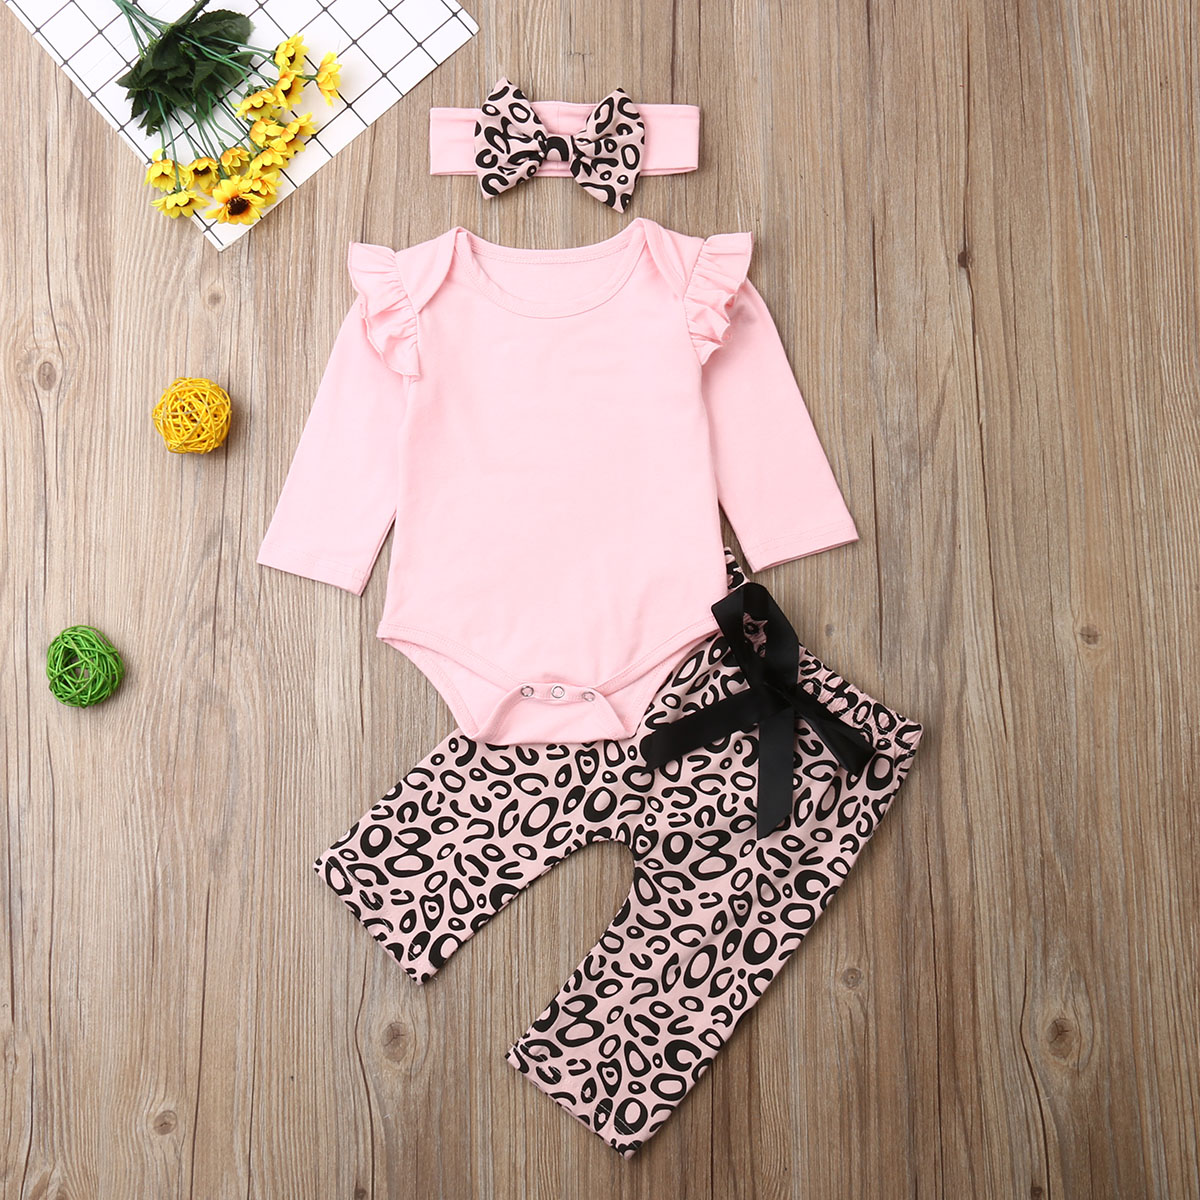 Pudcoco Newborn Baby Girl Clothes Fly Sleeve Knitting Cotton Romper Tops Leopard Print Long Pants Headband 3Pcs Outfits Clothes